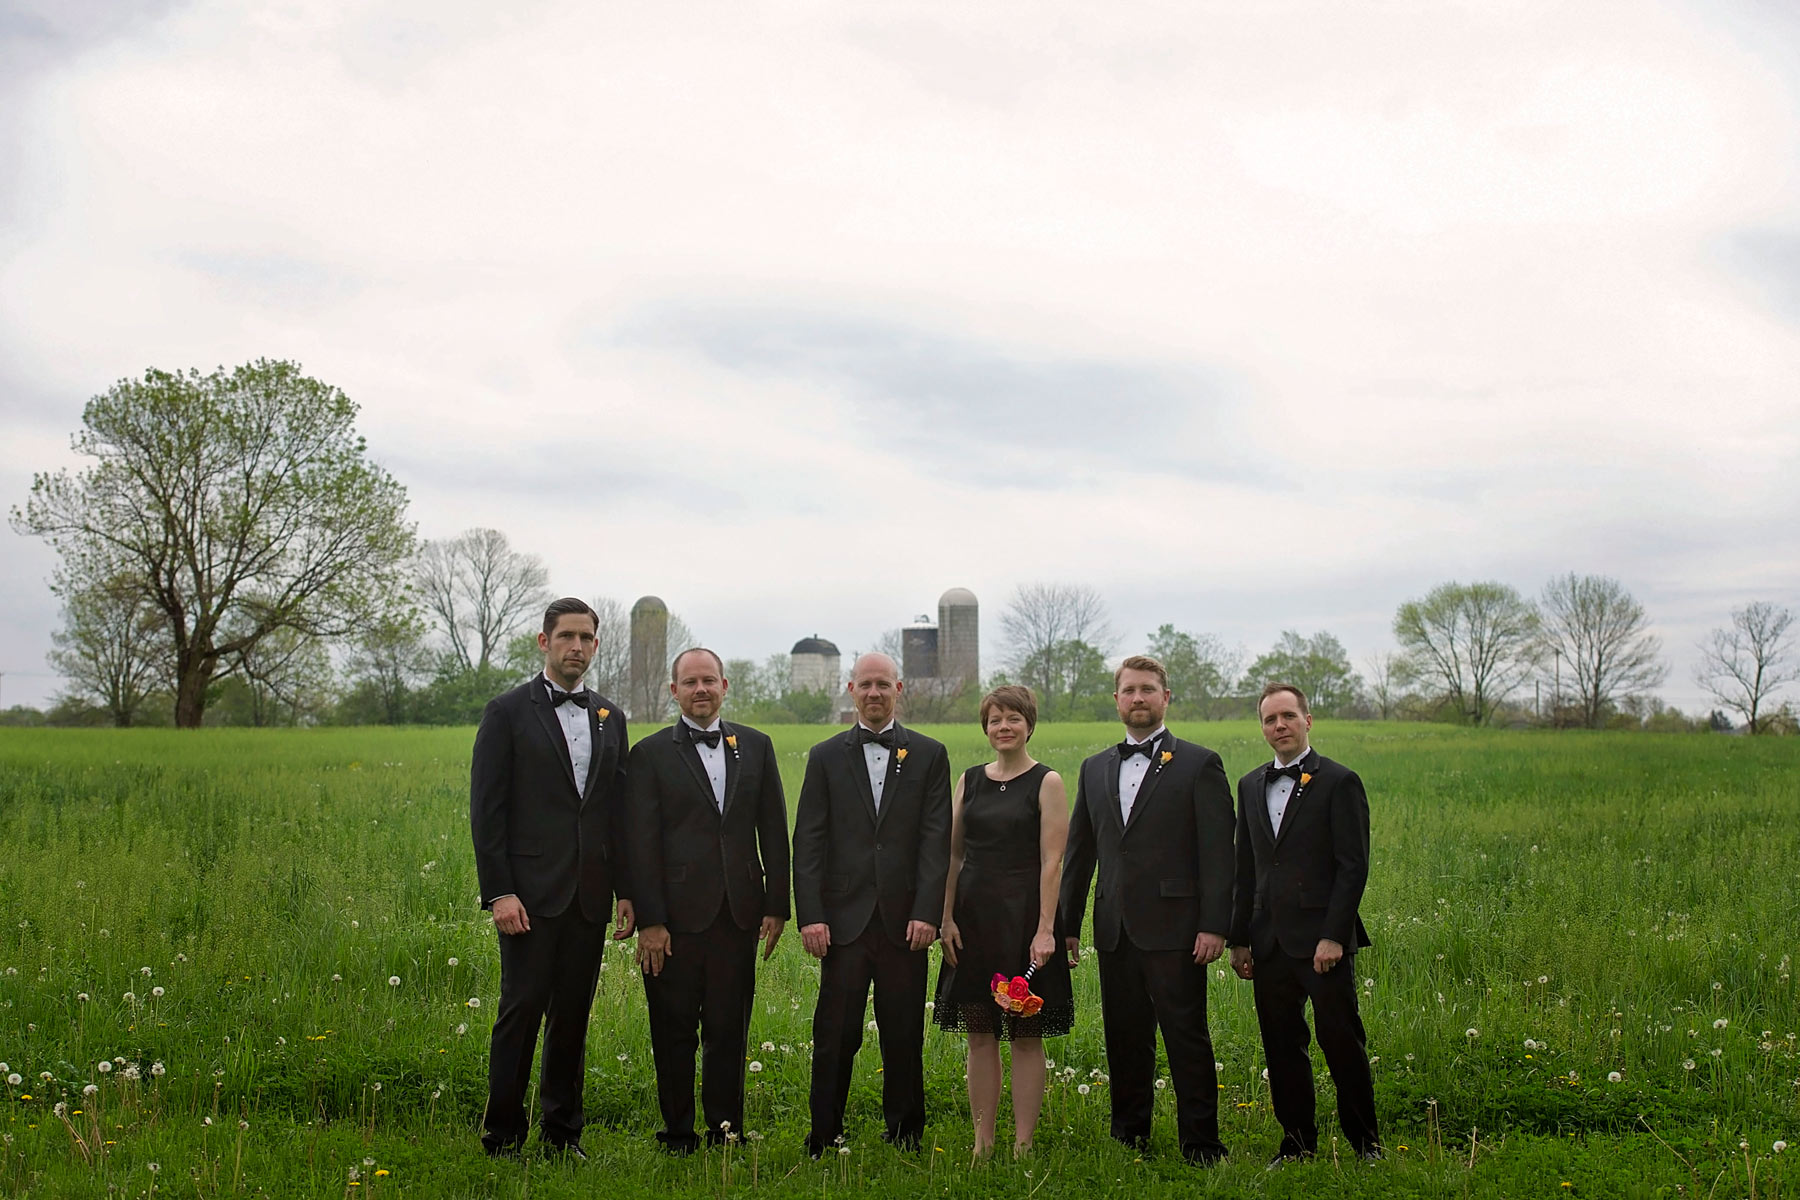 formal shot of groom's wedding party in a field